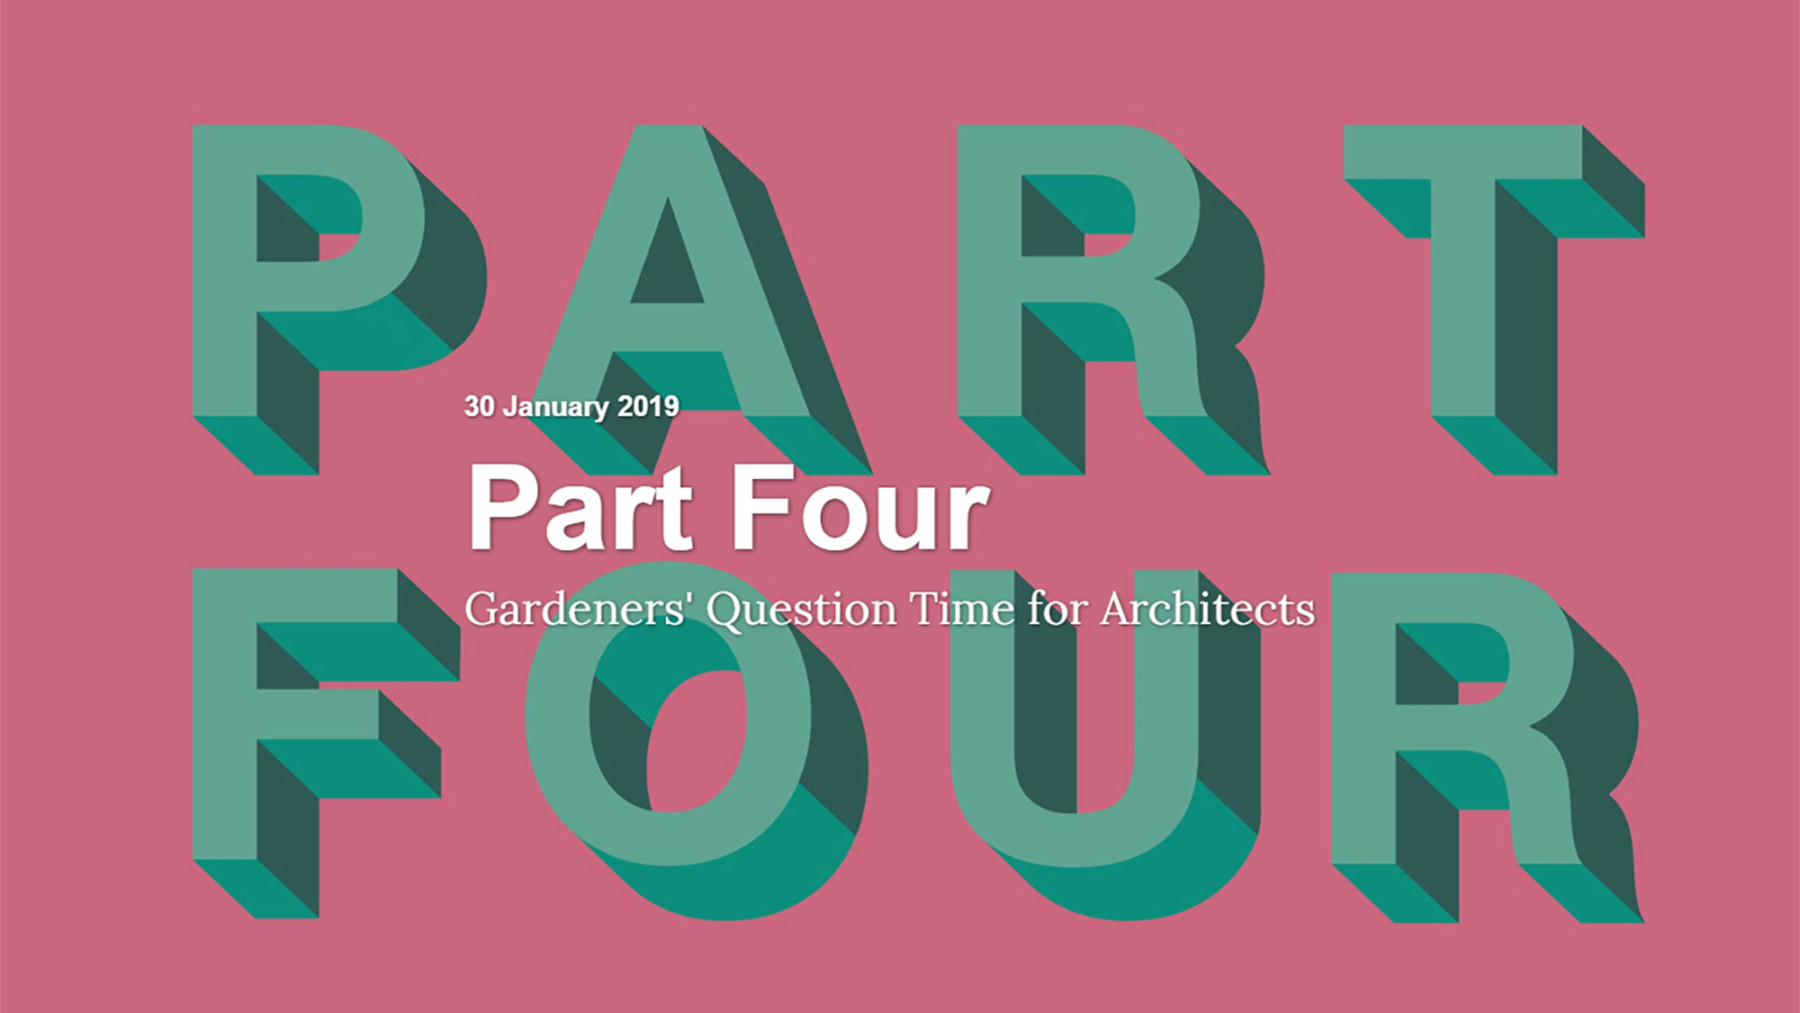 Jamie-Fobert-Architects-event-talk-lecture-panel-architecture-foundation-part-four